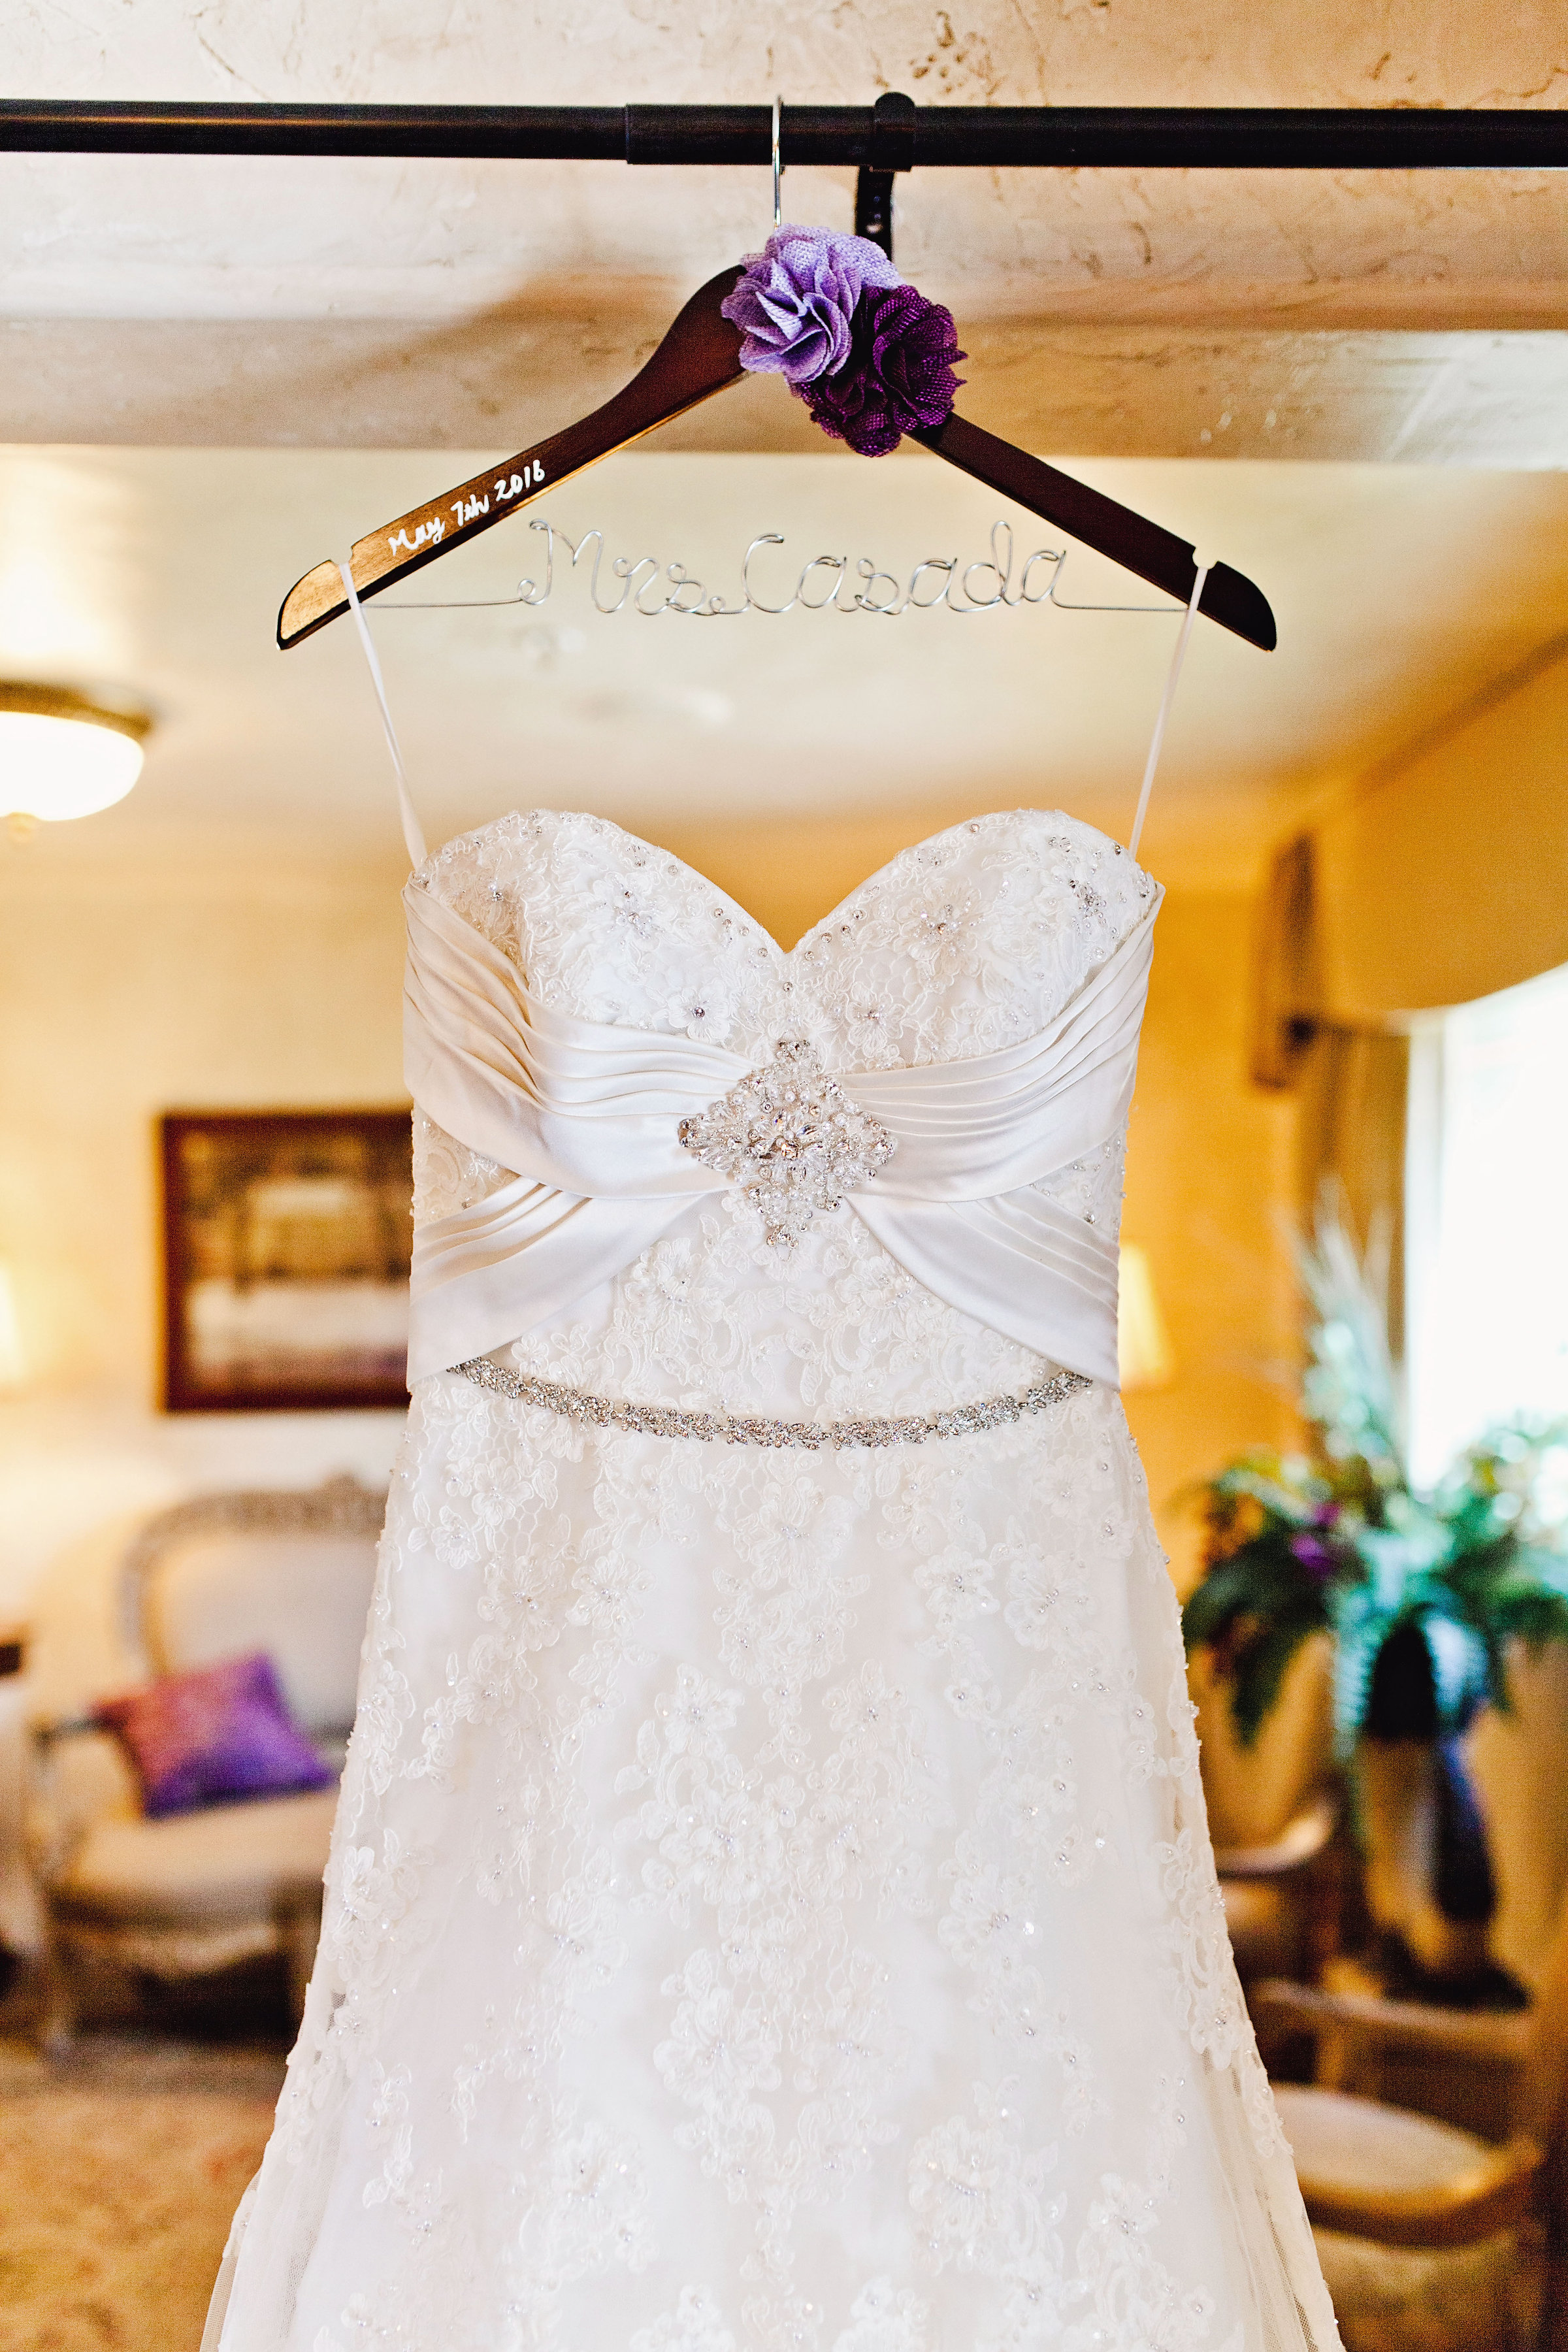 The Hanger - 1.Make sure you bring an appealing hanger for your wedding dress to be photographed with. It doesn't have to be fancy but nicer than a wire hanger.